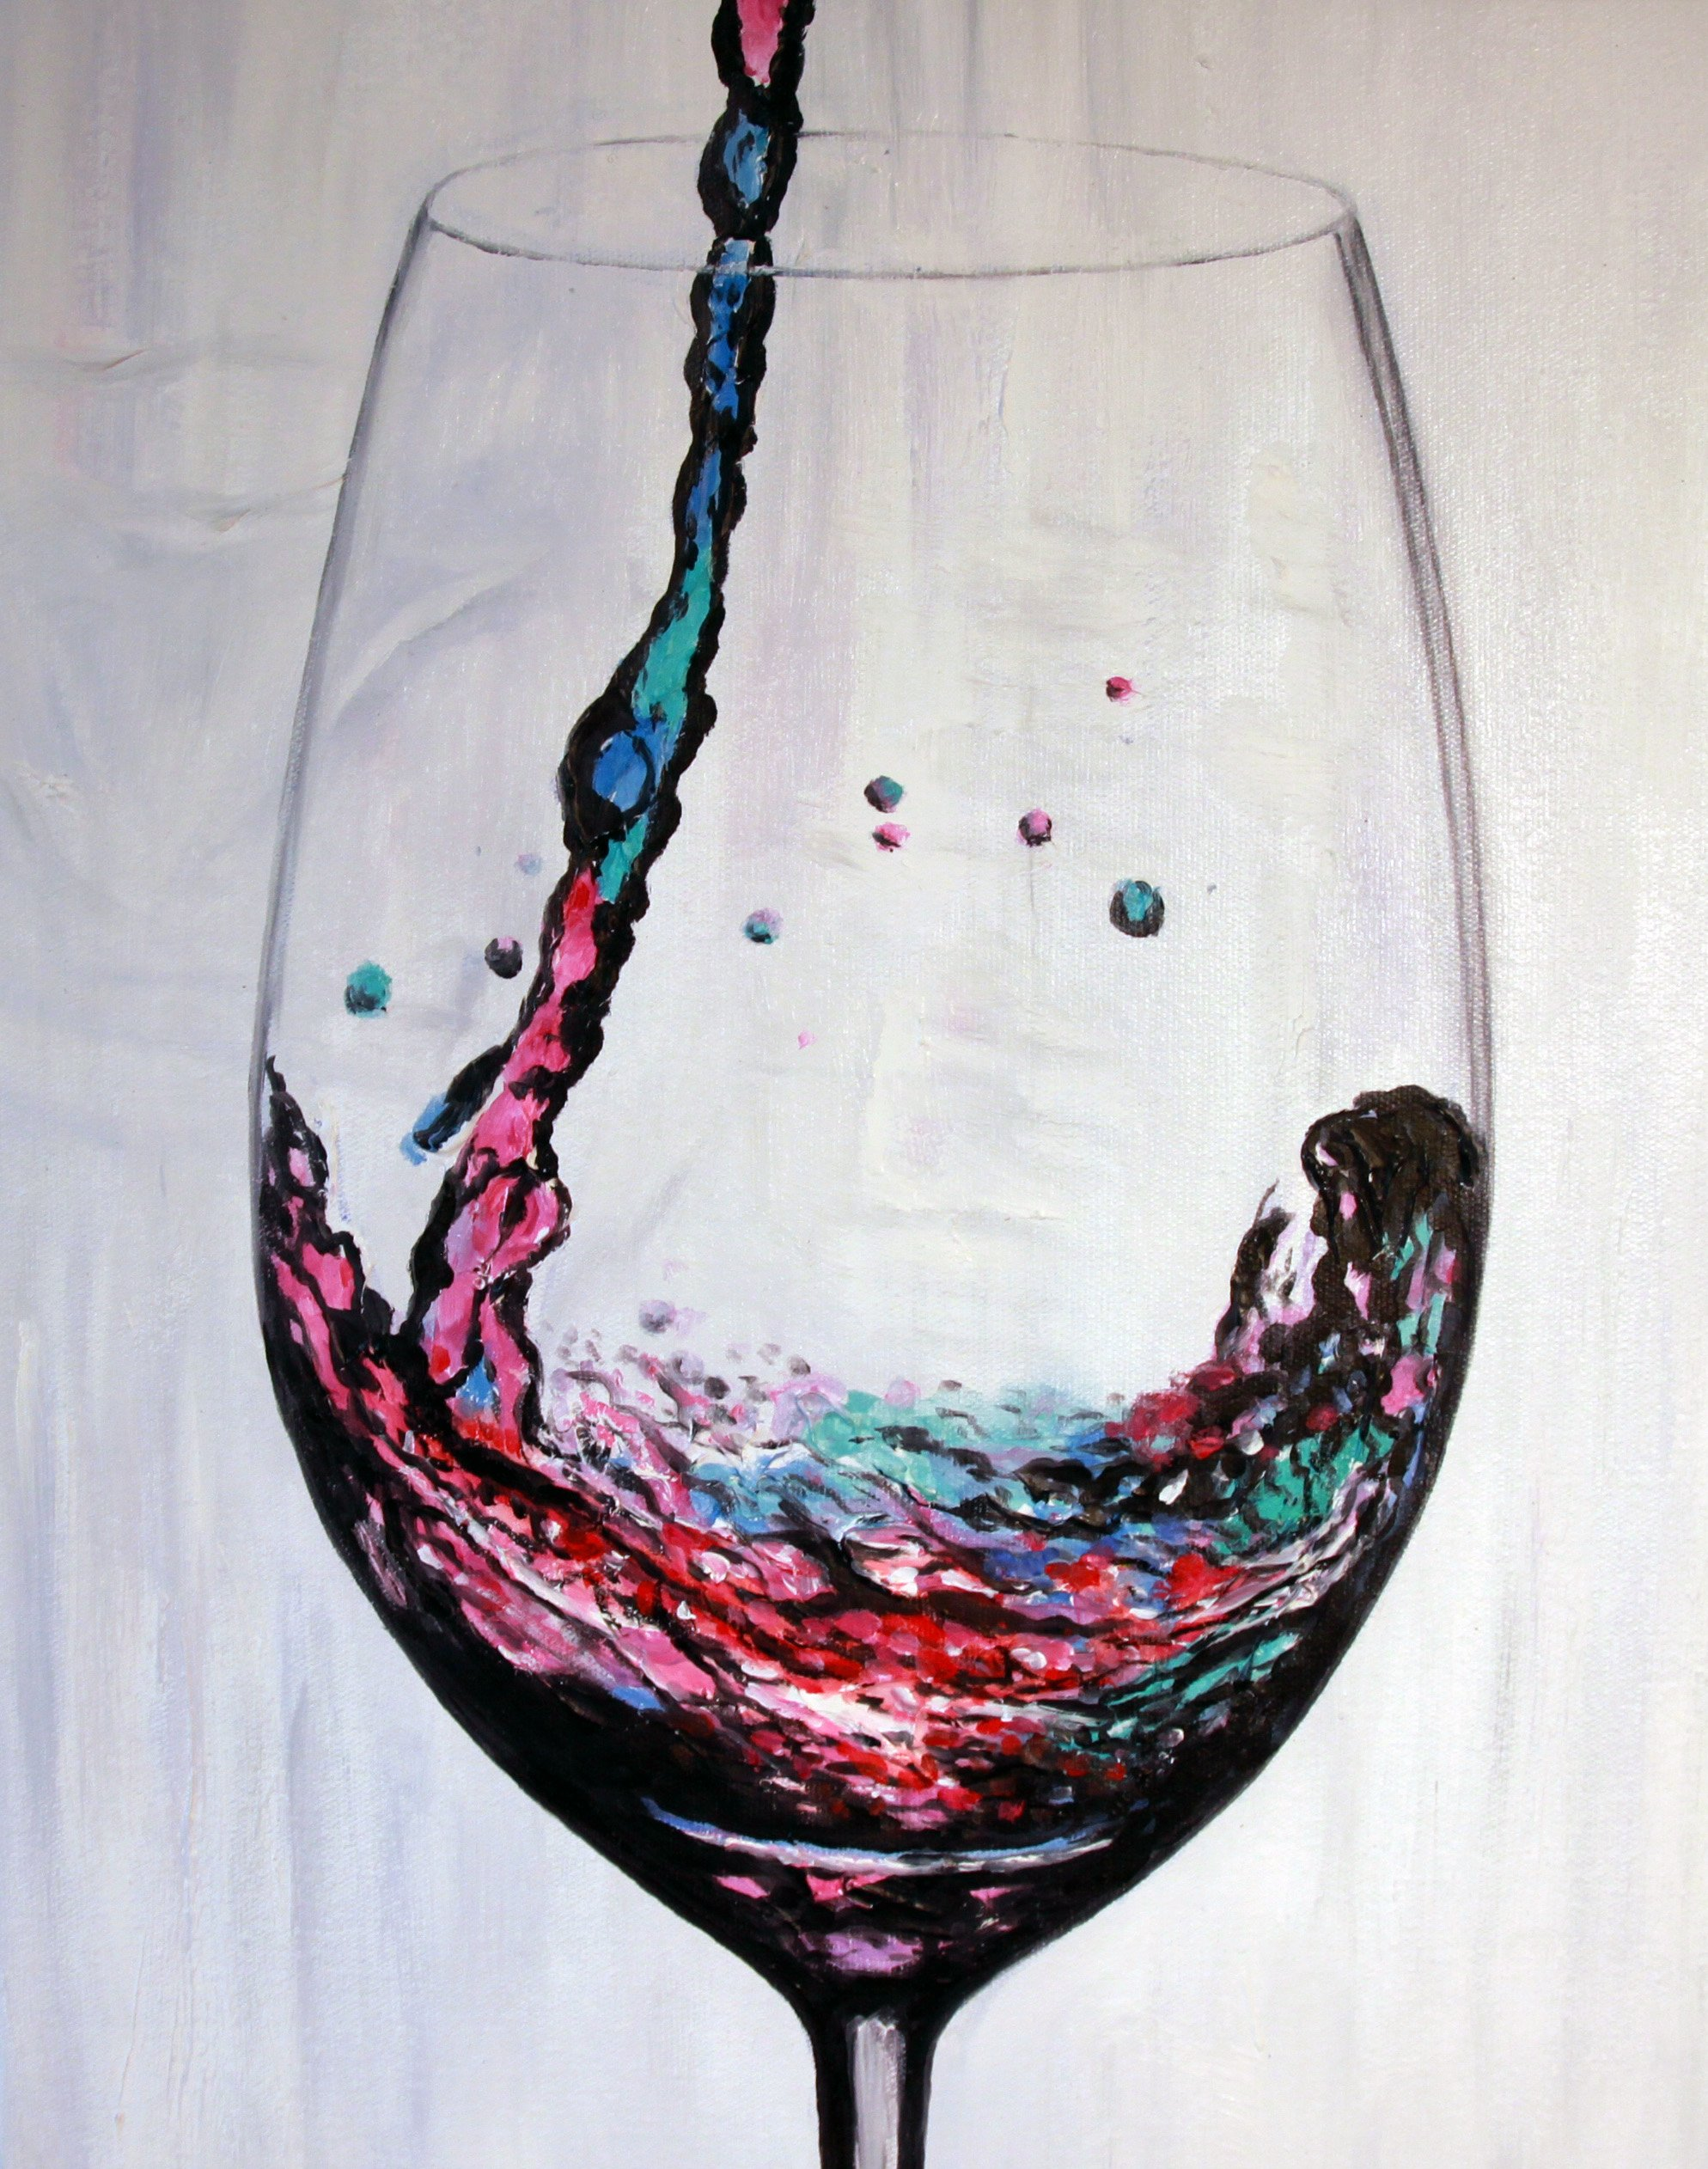 Premium ''Wine at the Delano'' Hand-Painted Canvas Art By Artocrat - Original 100% Hand-Painted Design, Exquisite Oil Painting Technique, Vibrant Colors, 16''x20'' Canvas, Modern Home & Office Decor Idea by artocrat